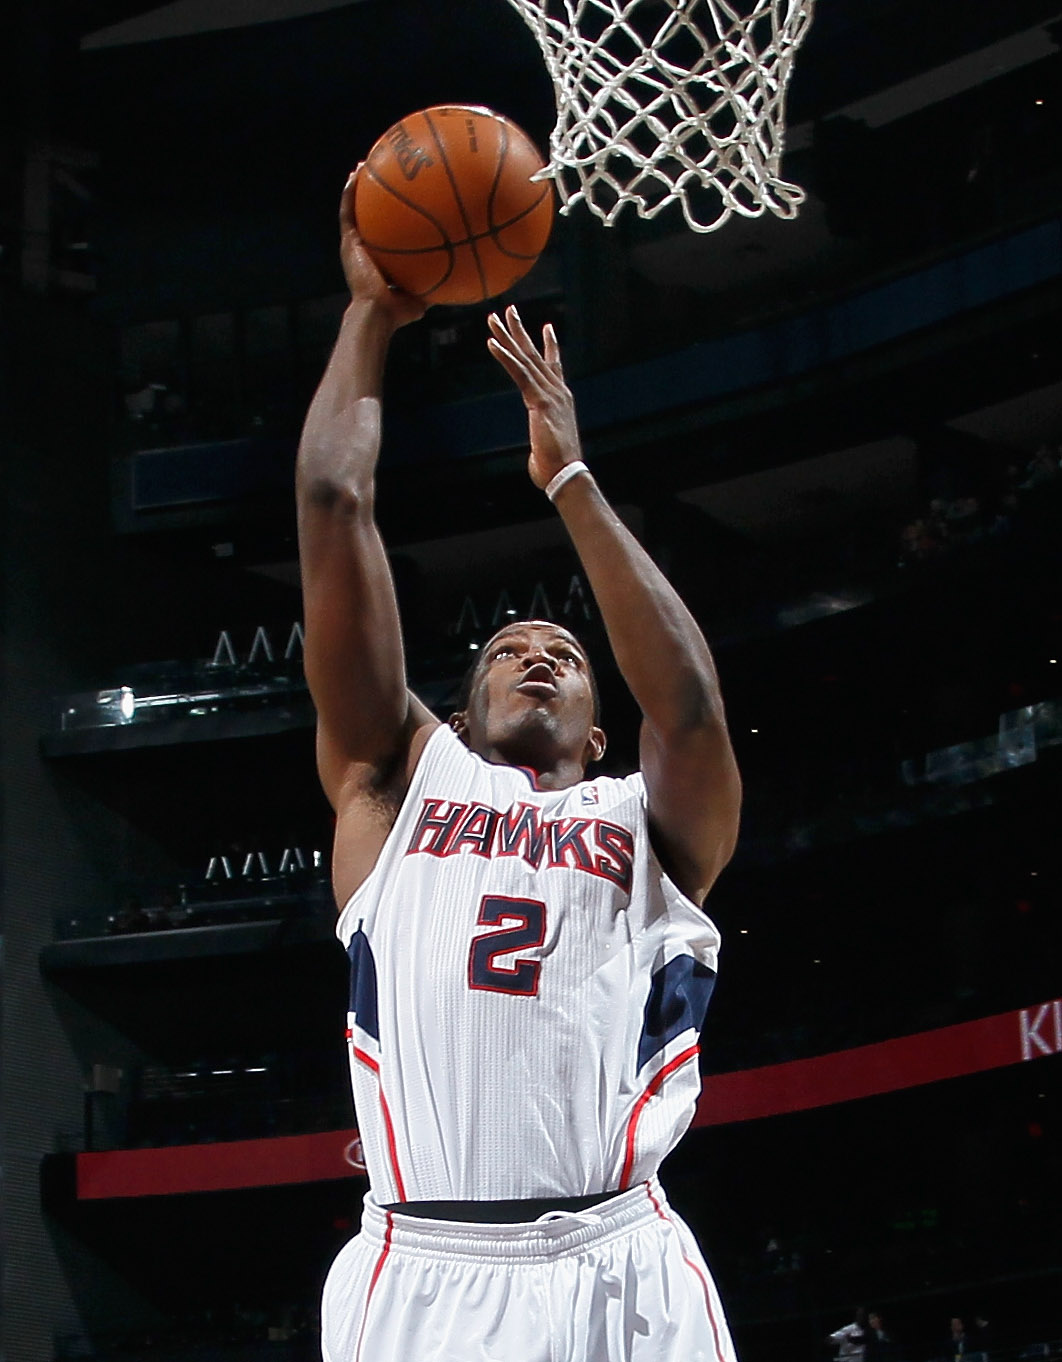 ATLANTA - NOVEMBER 12:  Joe Johnson #2 of the Atlanta Hawks against the Utah Jazz at Philips Arena on November 12, 2010 in Atlanta, Georgia.  NOTE TO USER: User expressly acknowledges and agrees that, by downloading and/or using this Photograph, User is c